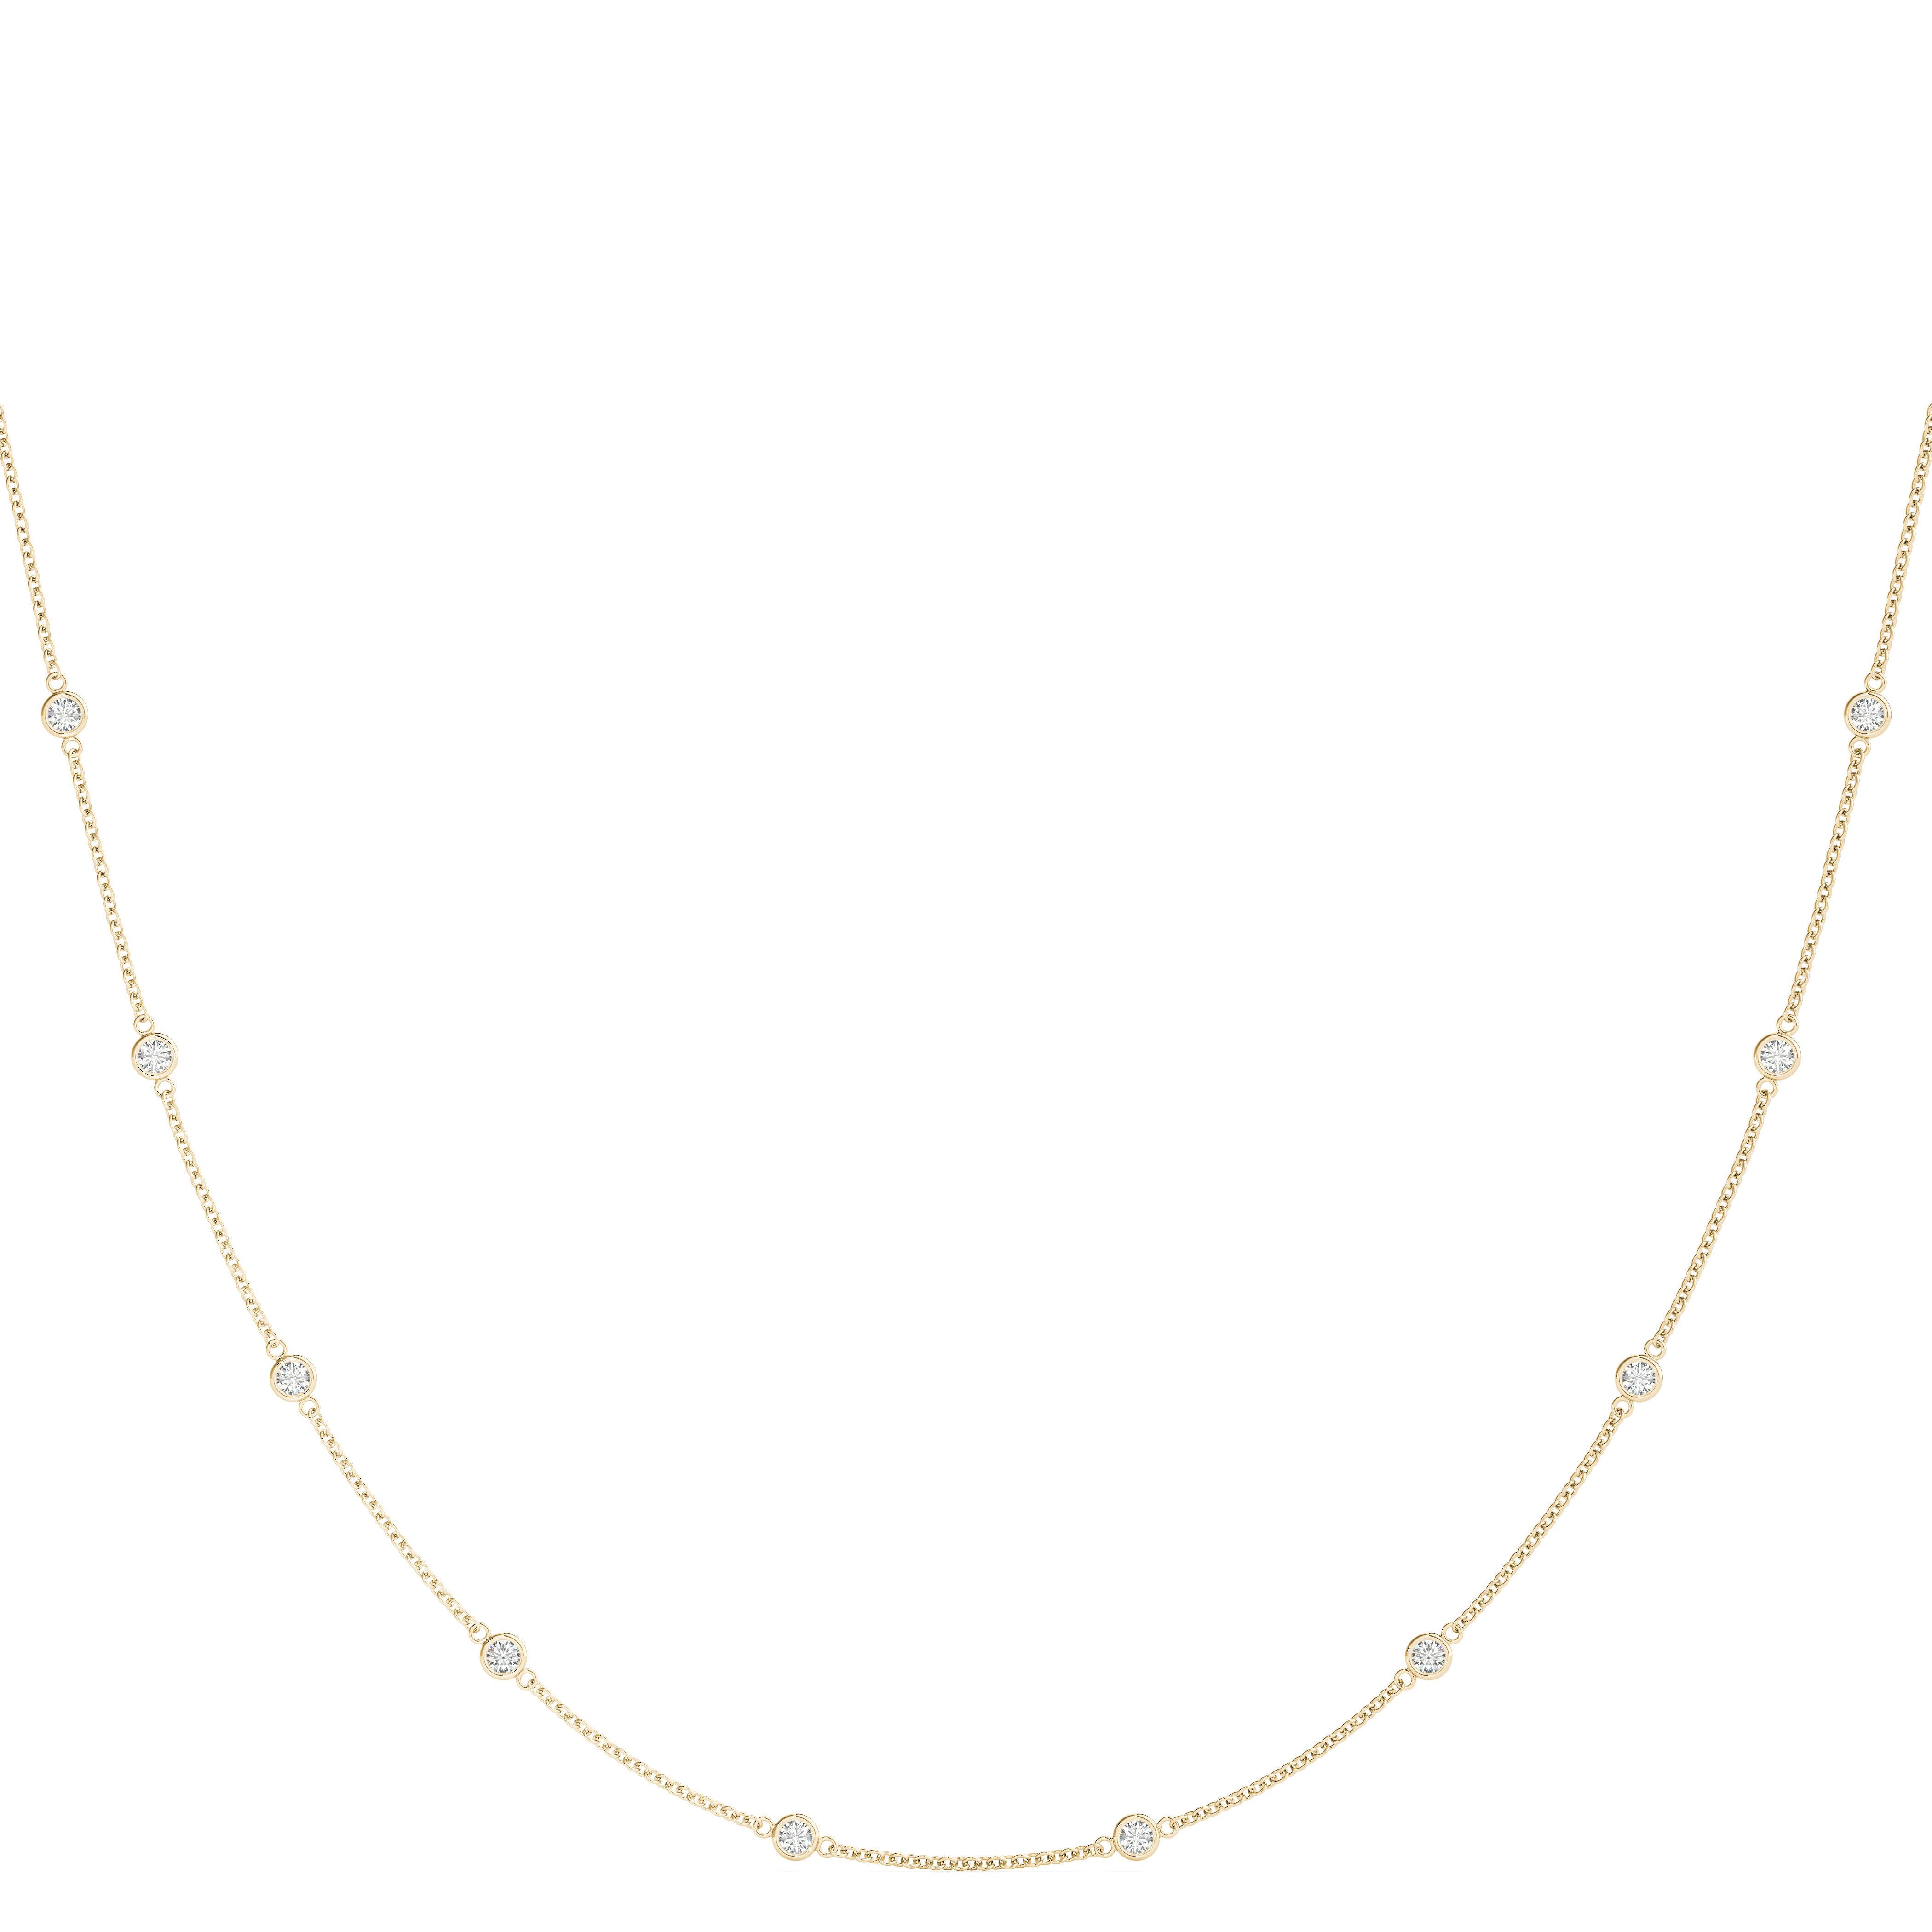 10 Diamonds By the Yard Necklace 1.5 Ct.